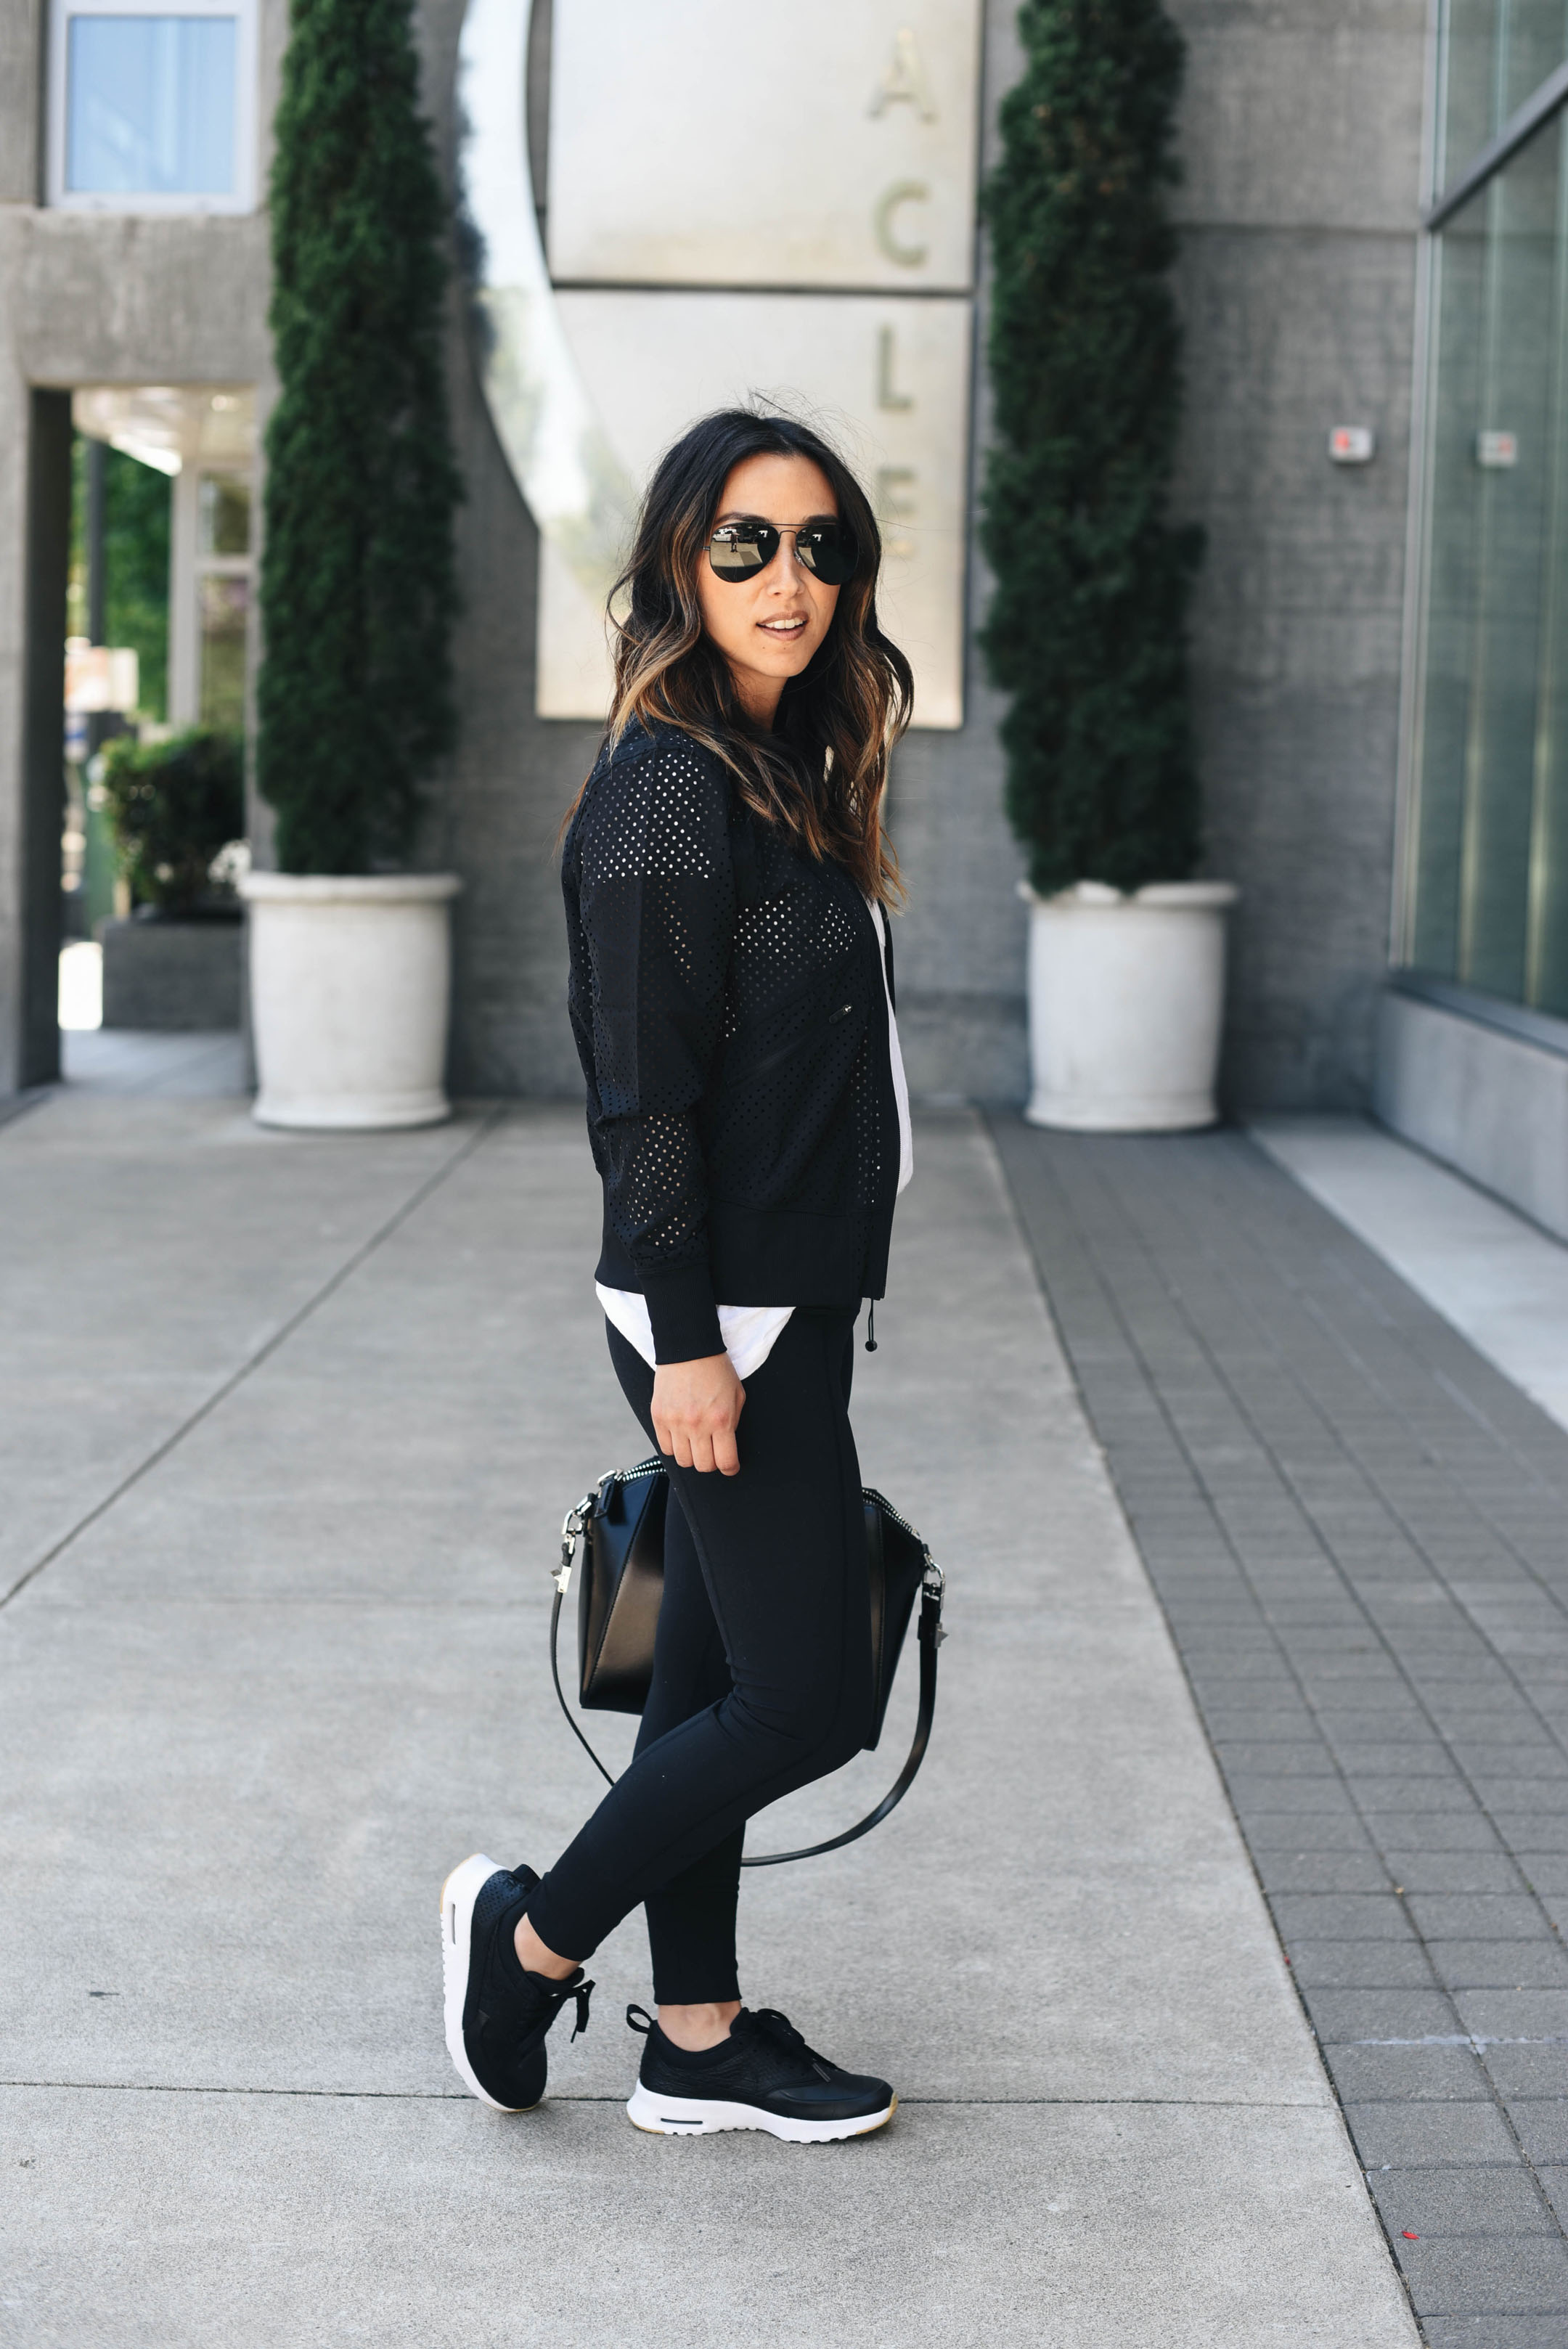 How To Pull Off Athleisure Wear + 30 Outfit Ideas